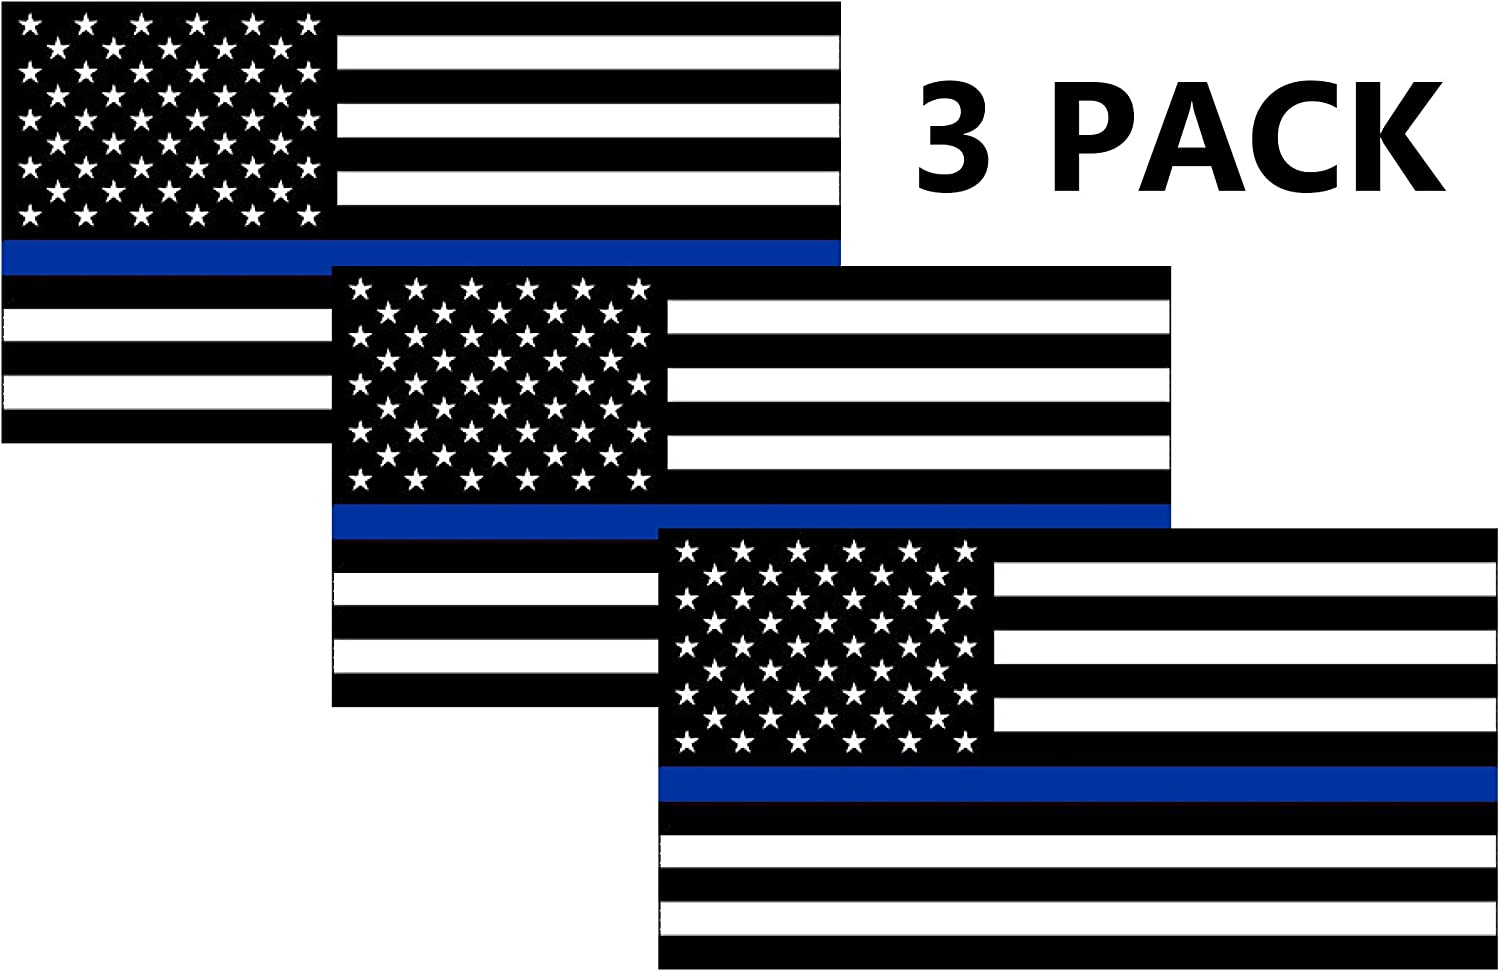 Thin Blue Line Blue Lives Matter Flag Sticker Vinyl Decal for Car Truck Window Bumper Sticker Support of Police and Law Enforcement Officers 3x5 3 Pack